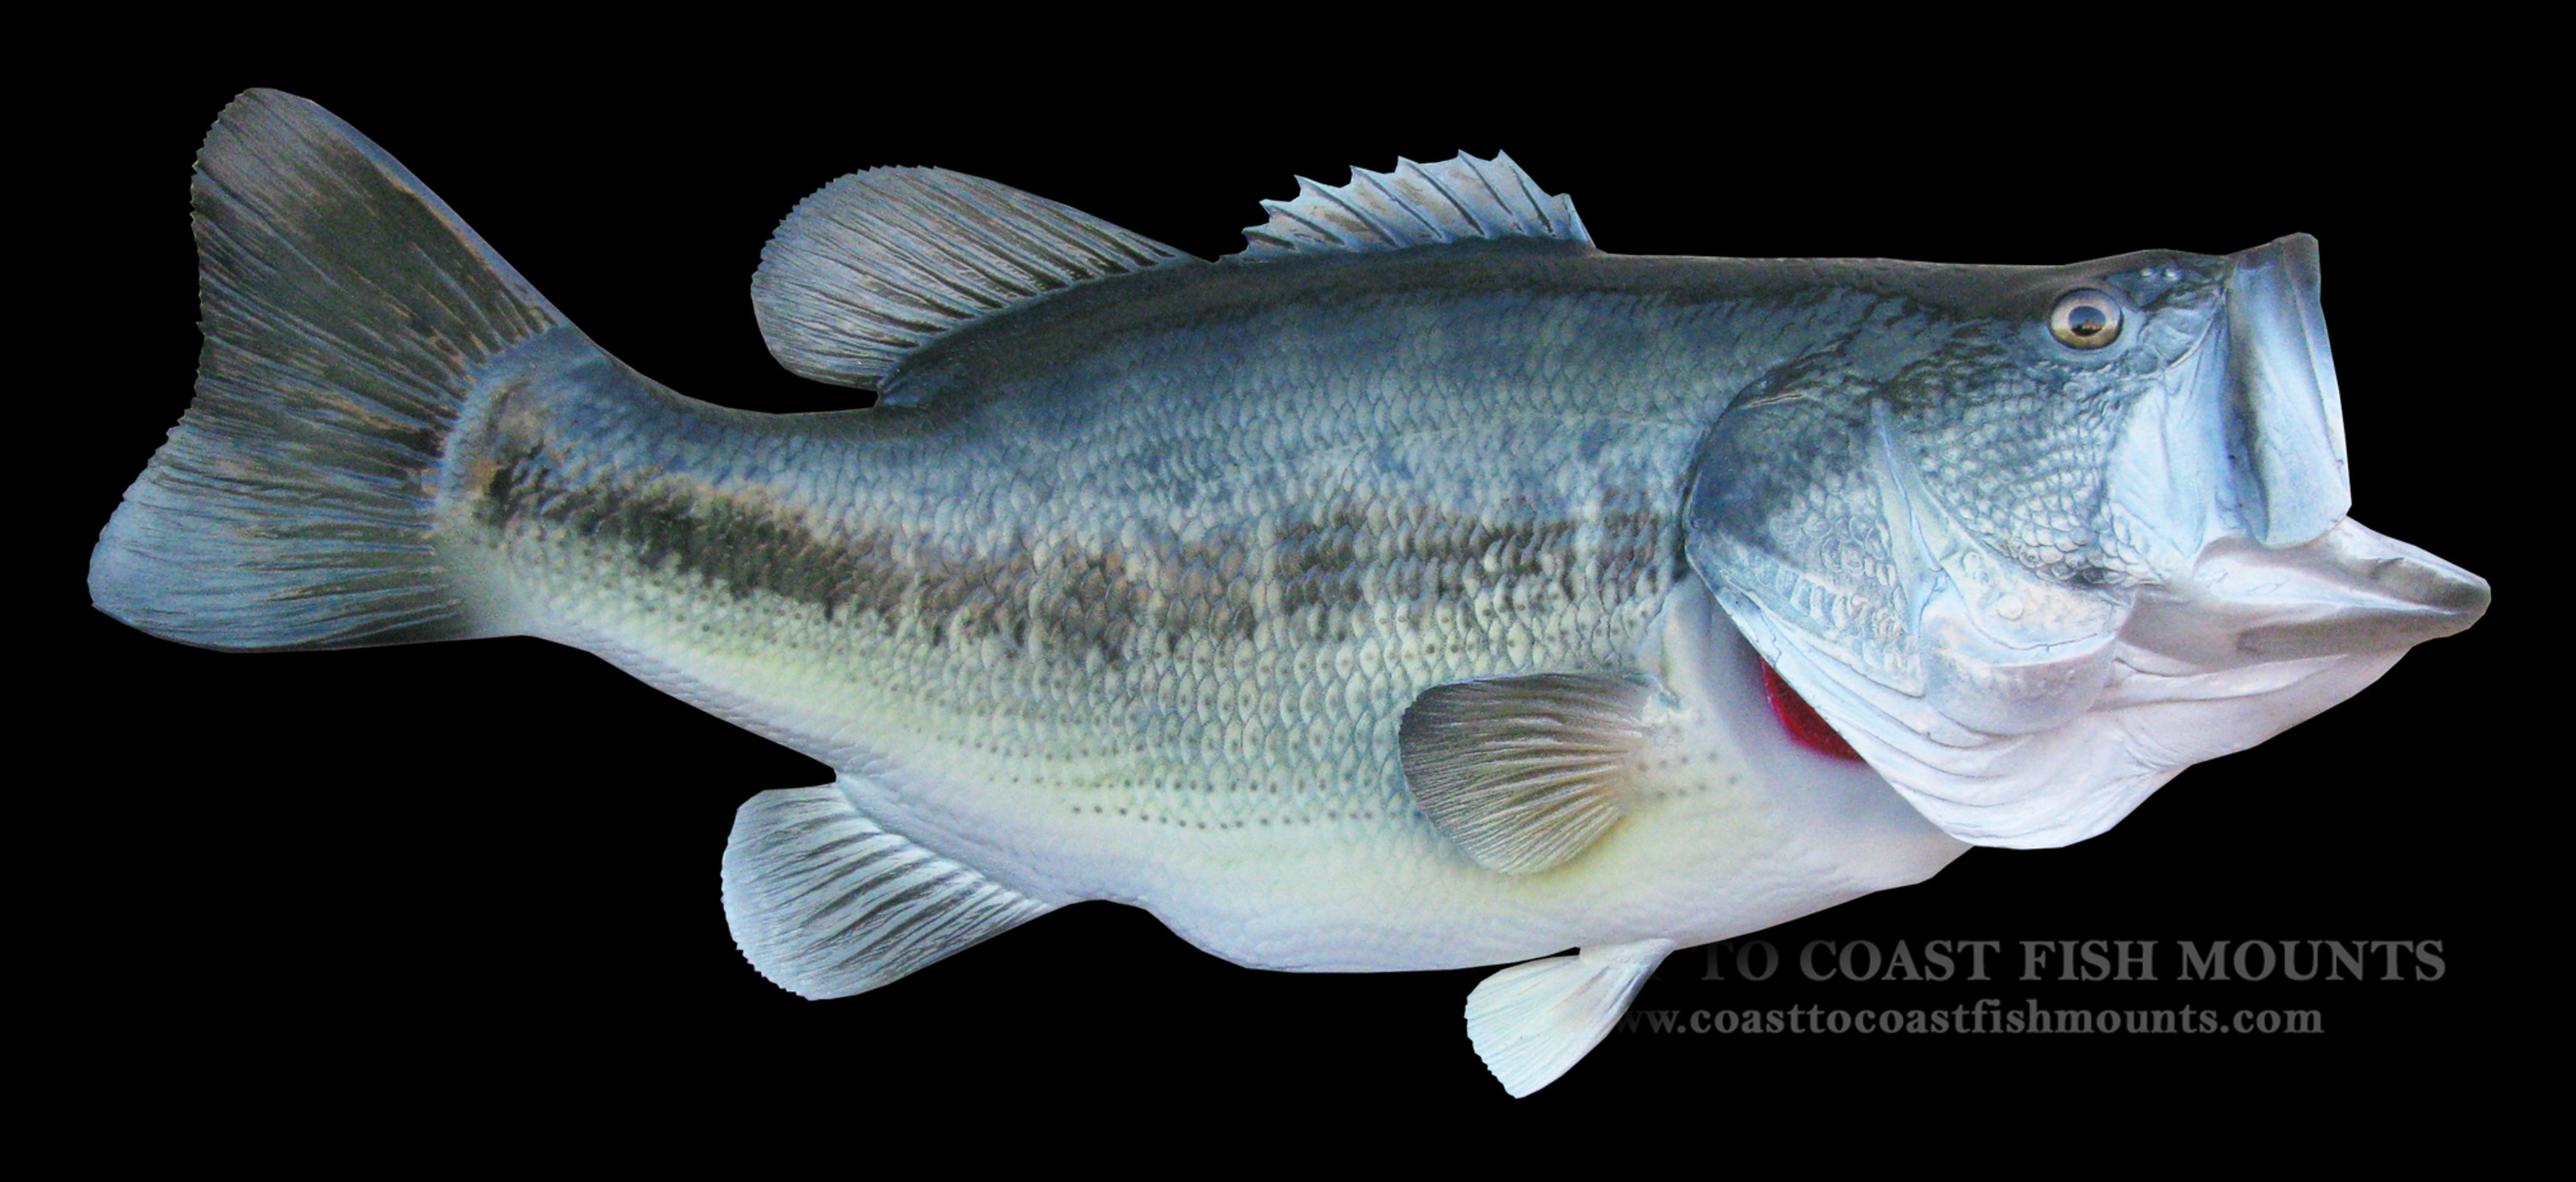 Largemouth bass fish mount and fish replicas coast to coast for Bass fish images